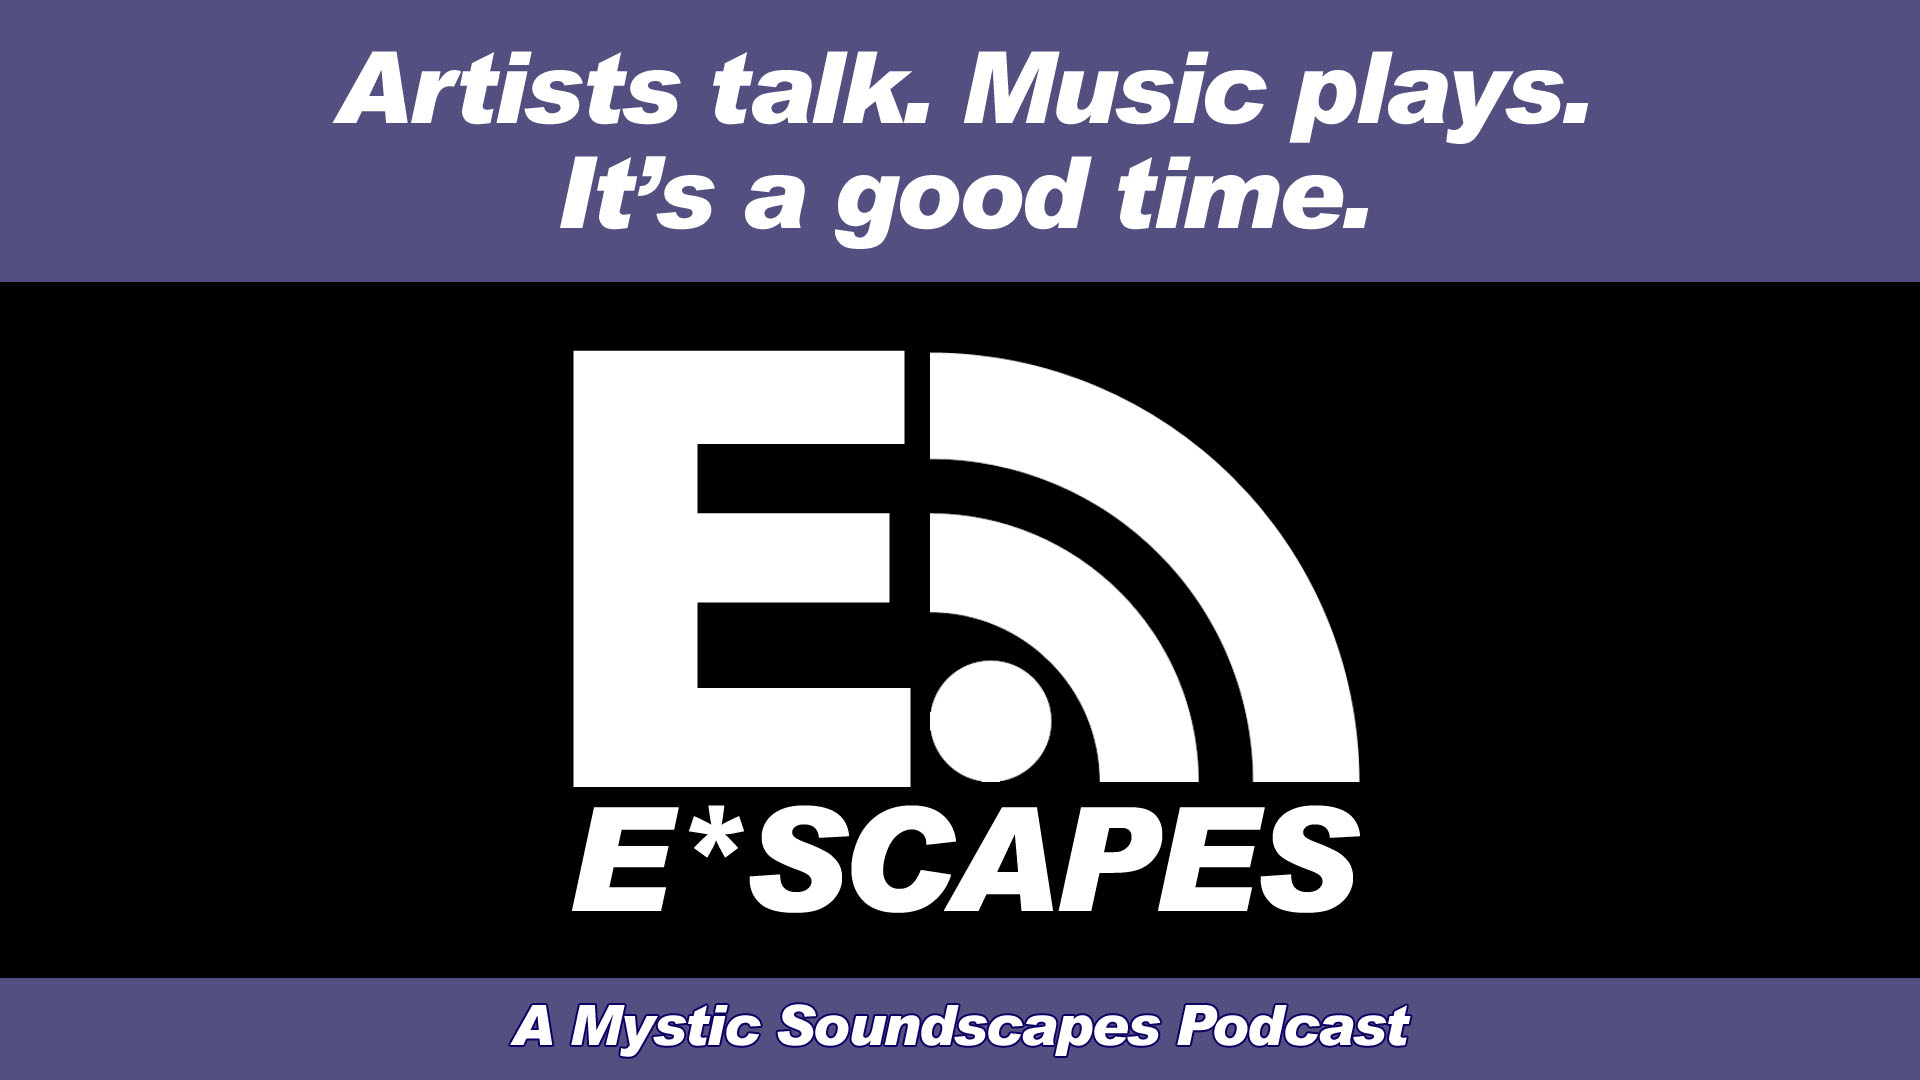 E-Scapes podcast logo